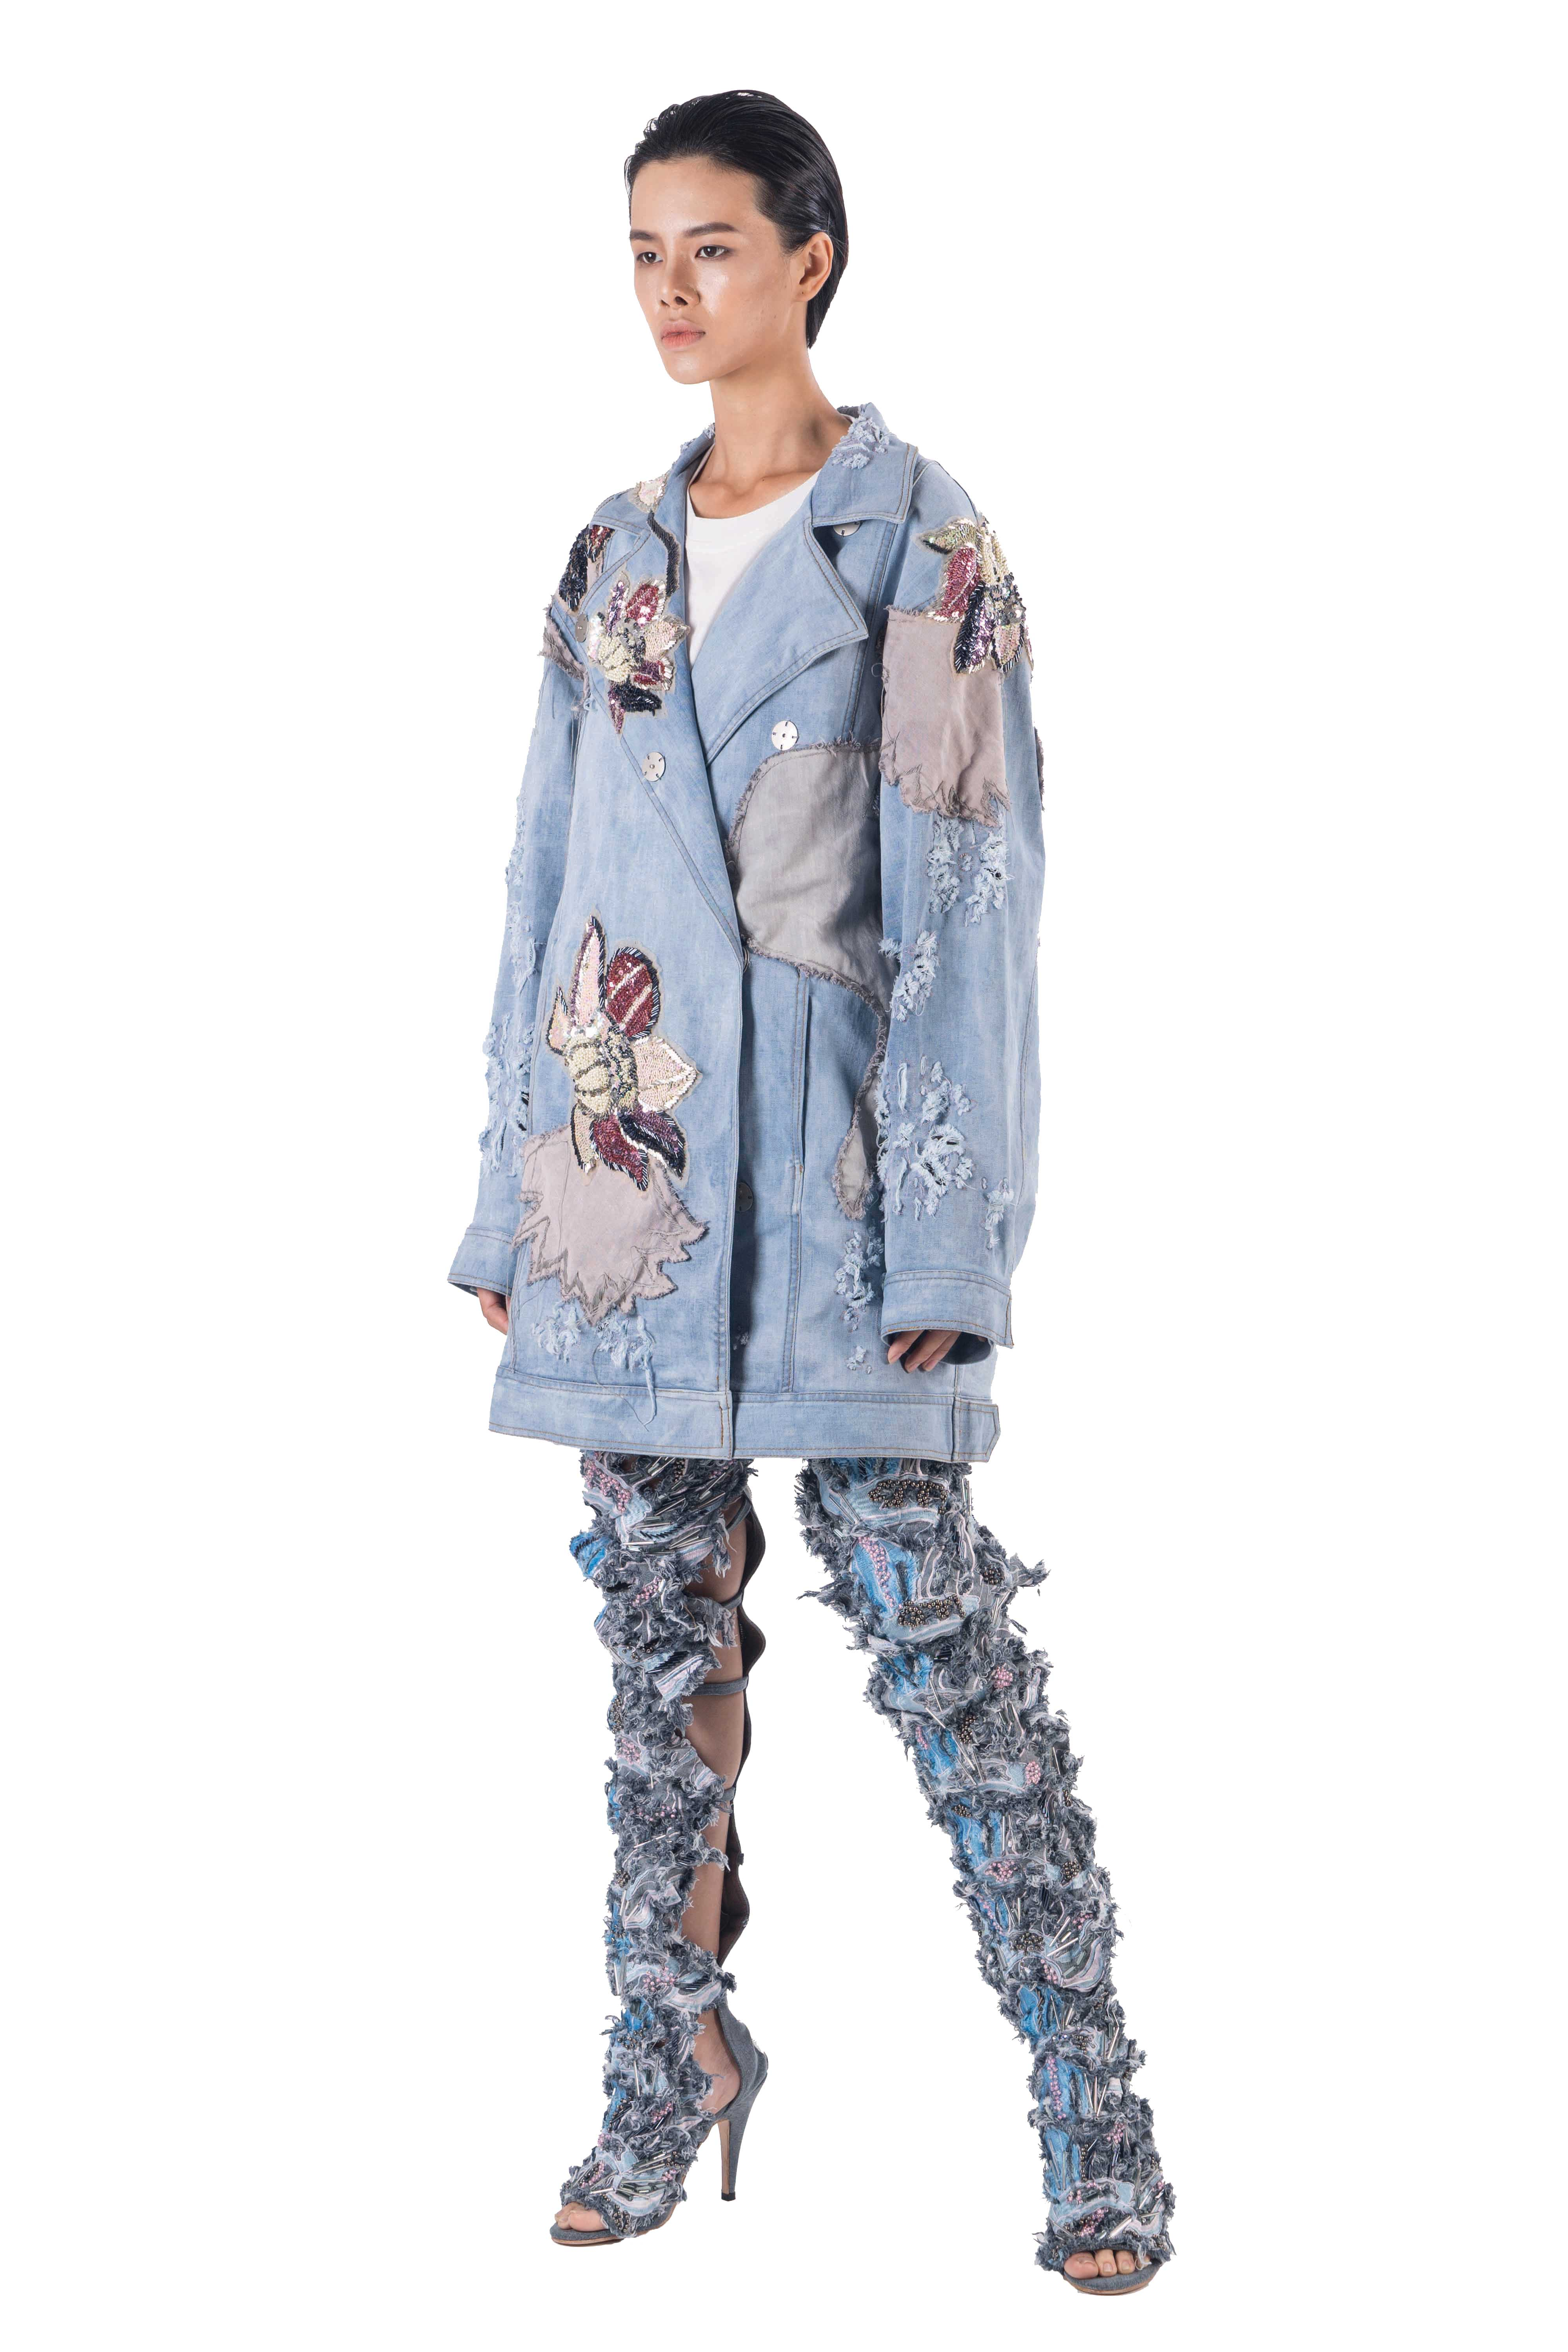 Blue distressed denim long jacket with ripped details, sequined lotus flowers and embellishment